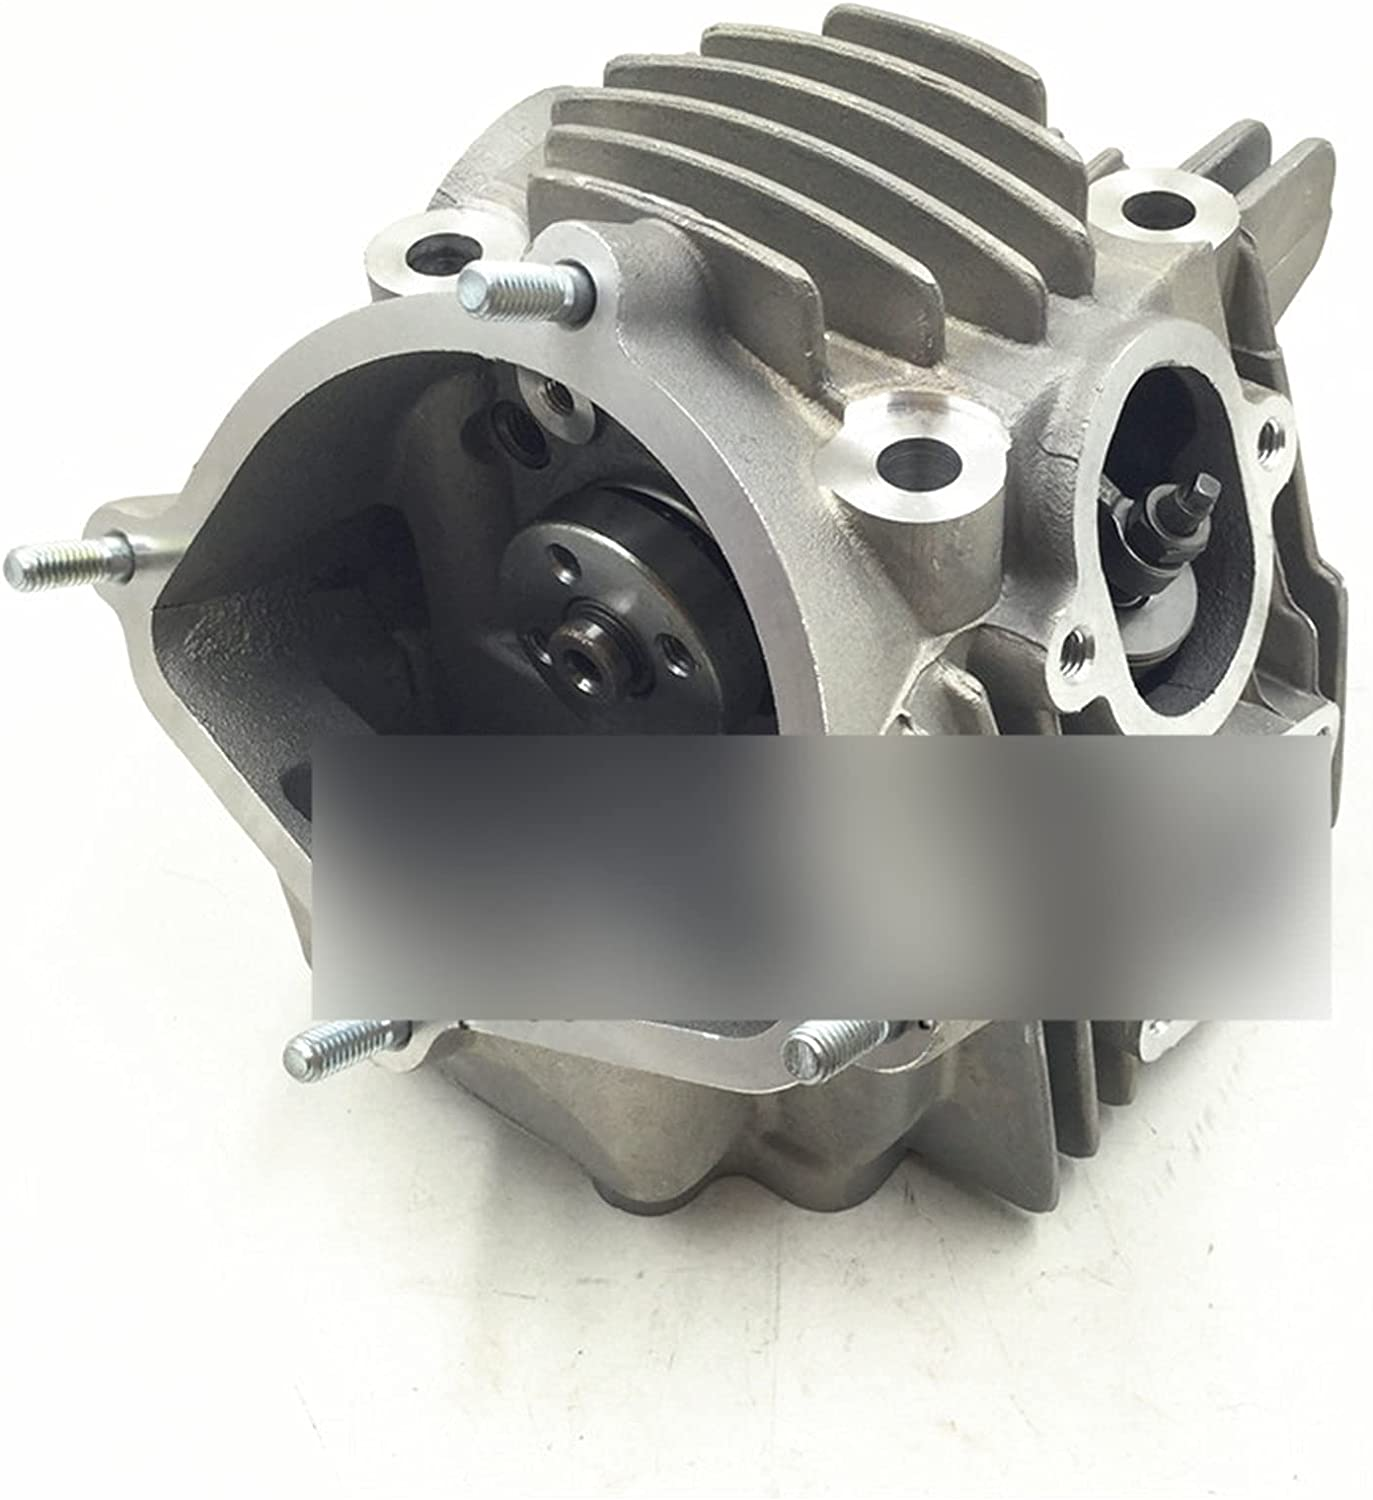 Award ZhuFengshop YX At the price of surprise 160CC Engine Cylinder Head Assembly Yinxiang 160